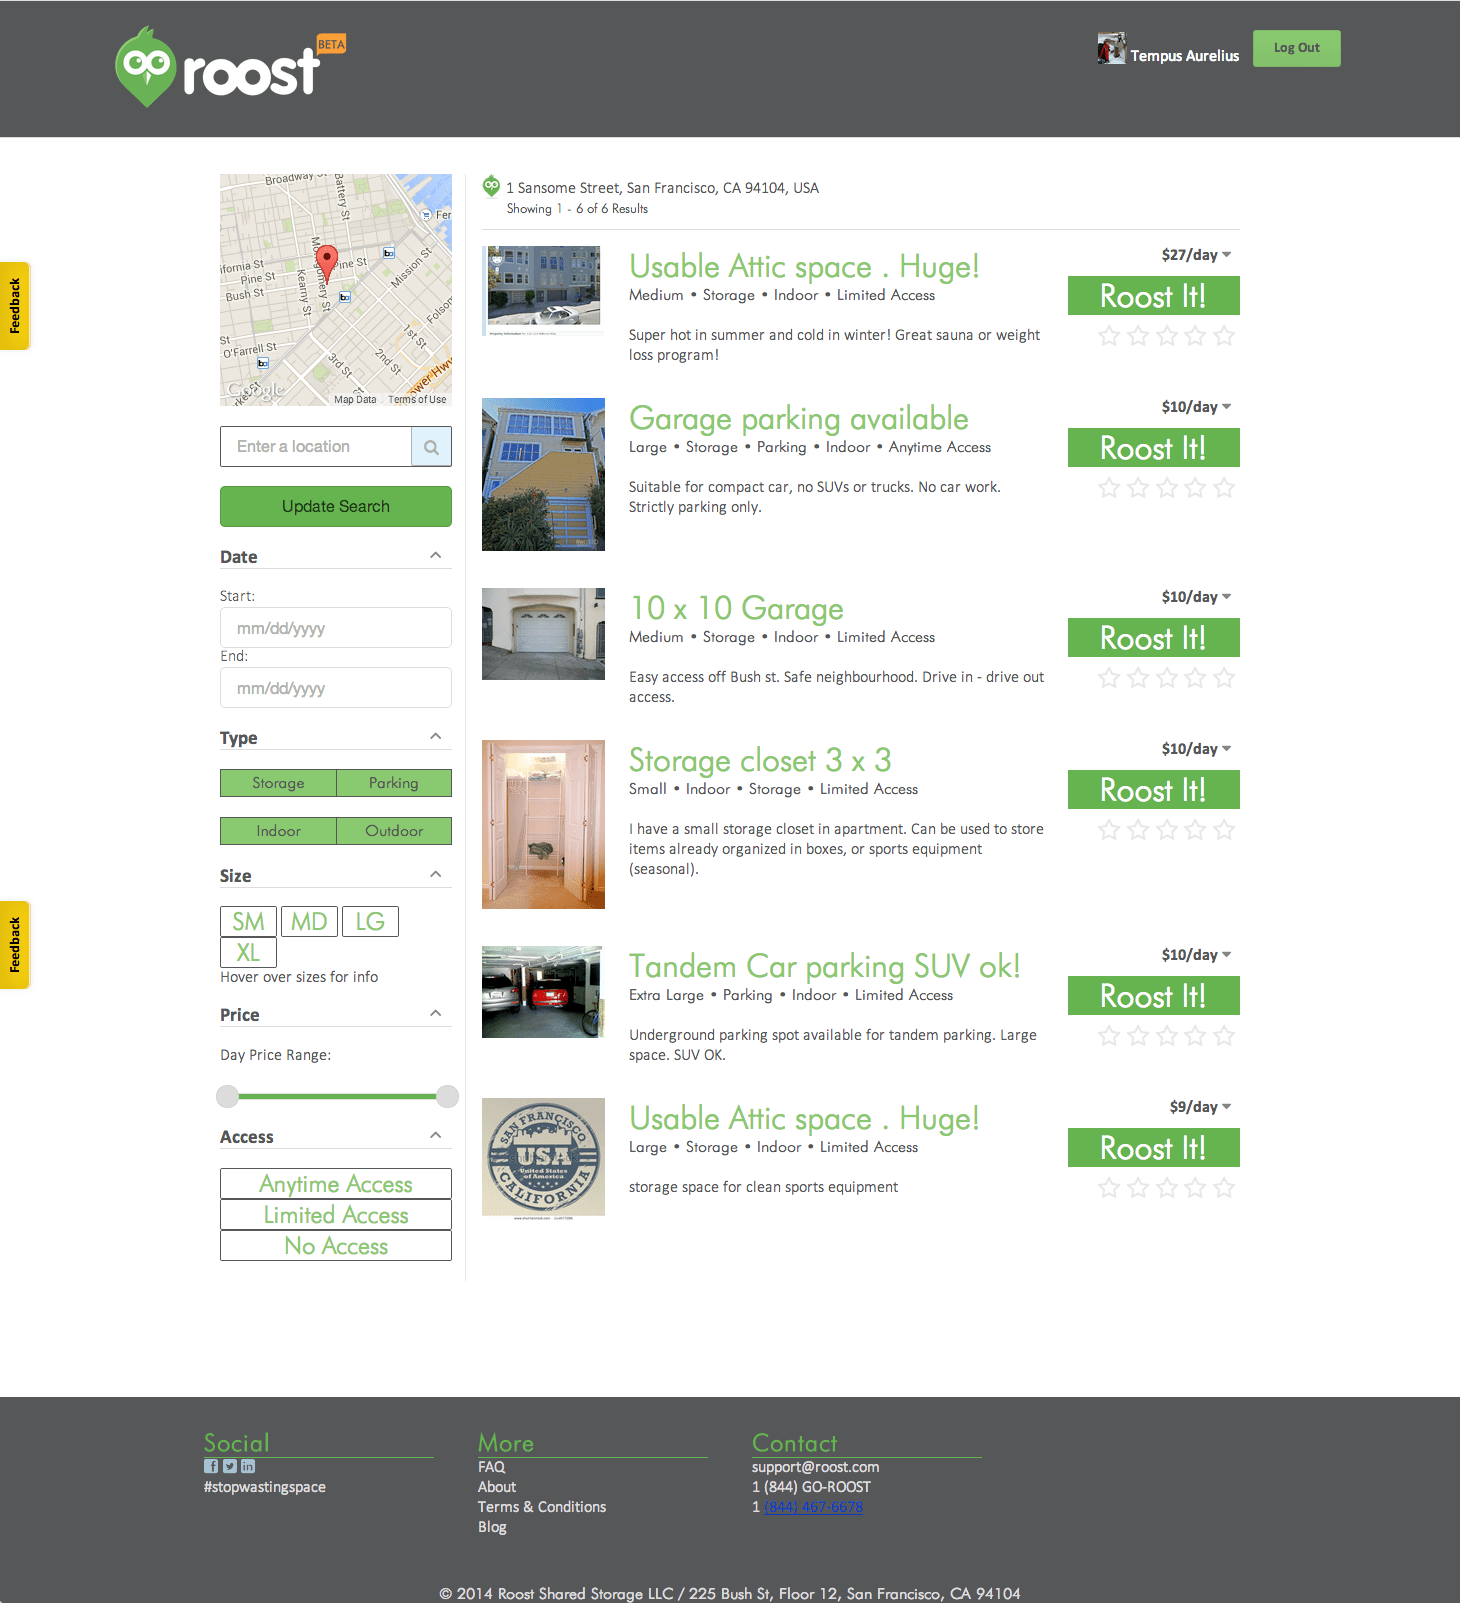 Roost search results